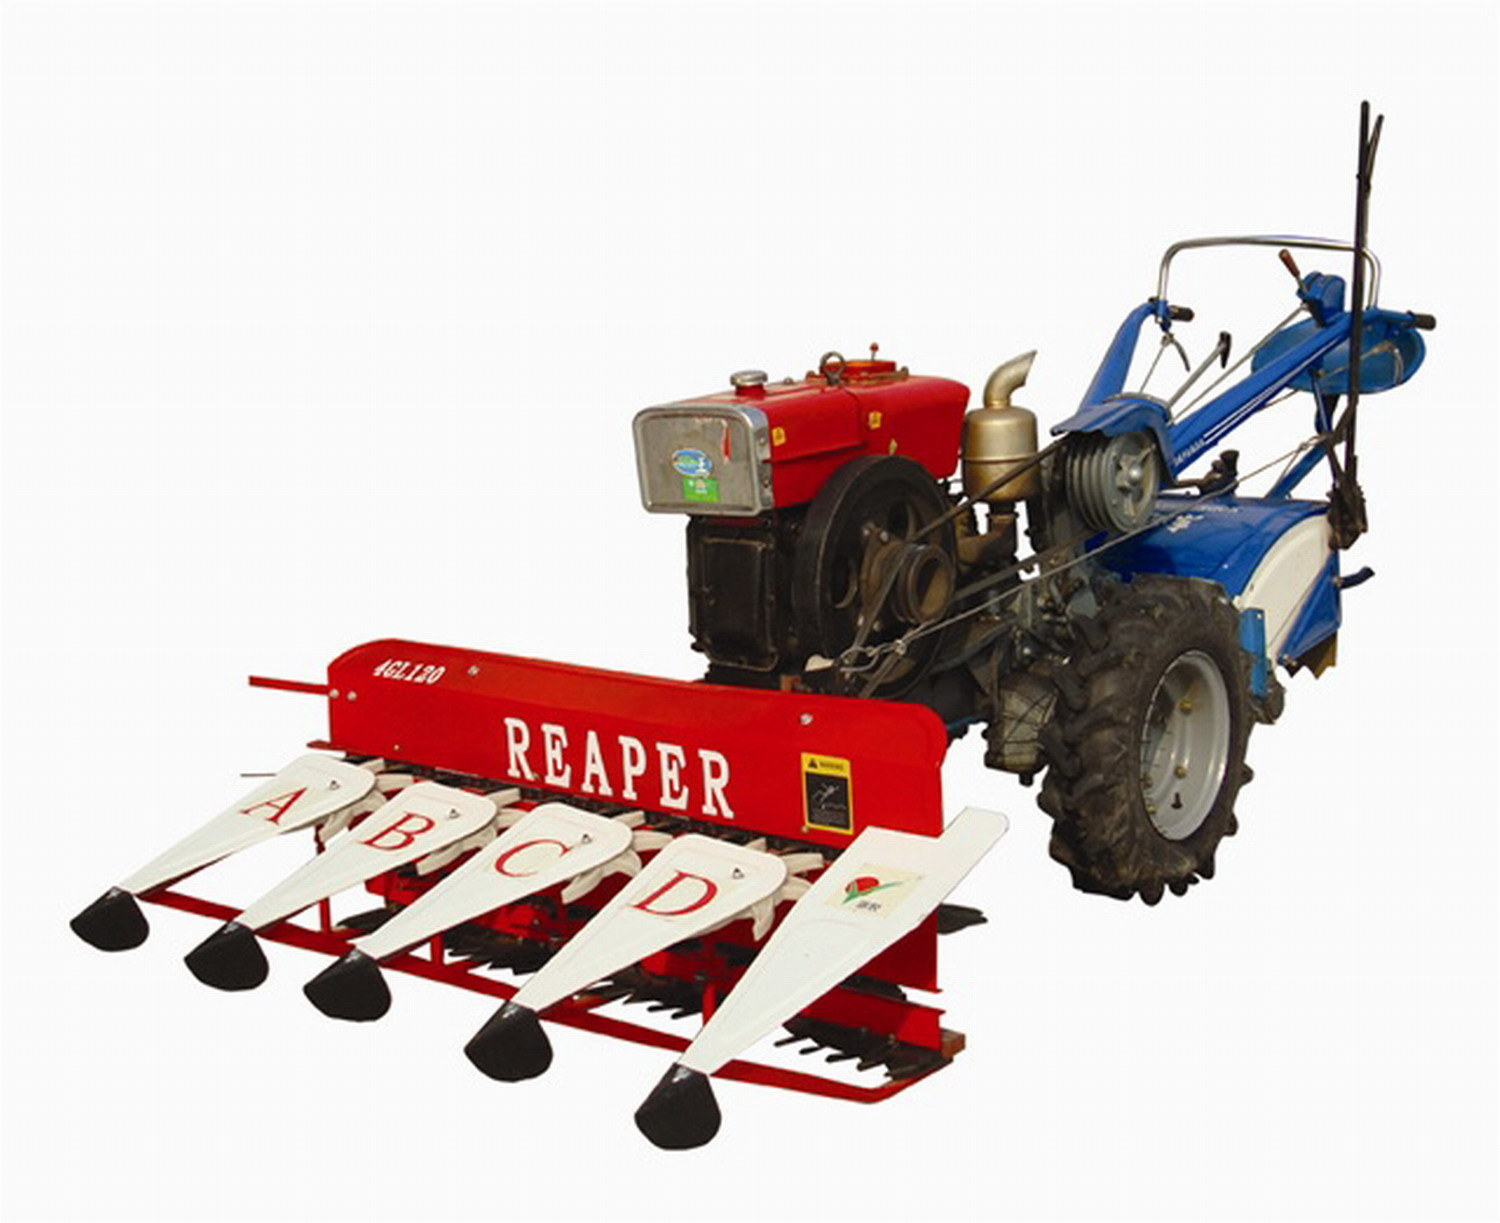 Reaper Header for Df and Sf Power Tiller